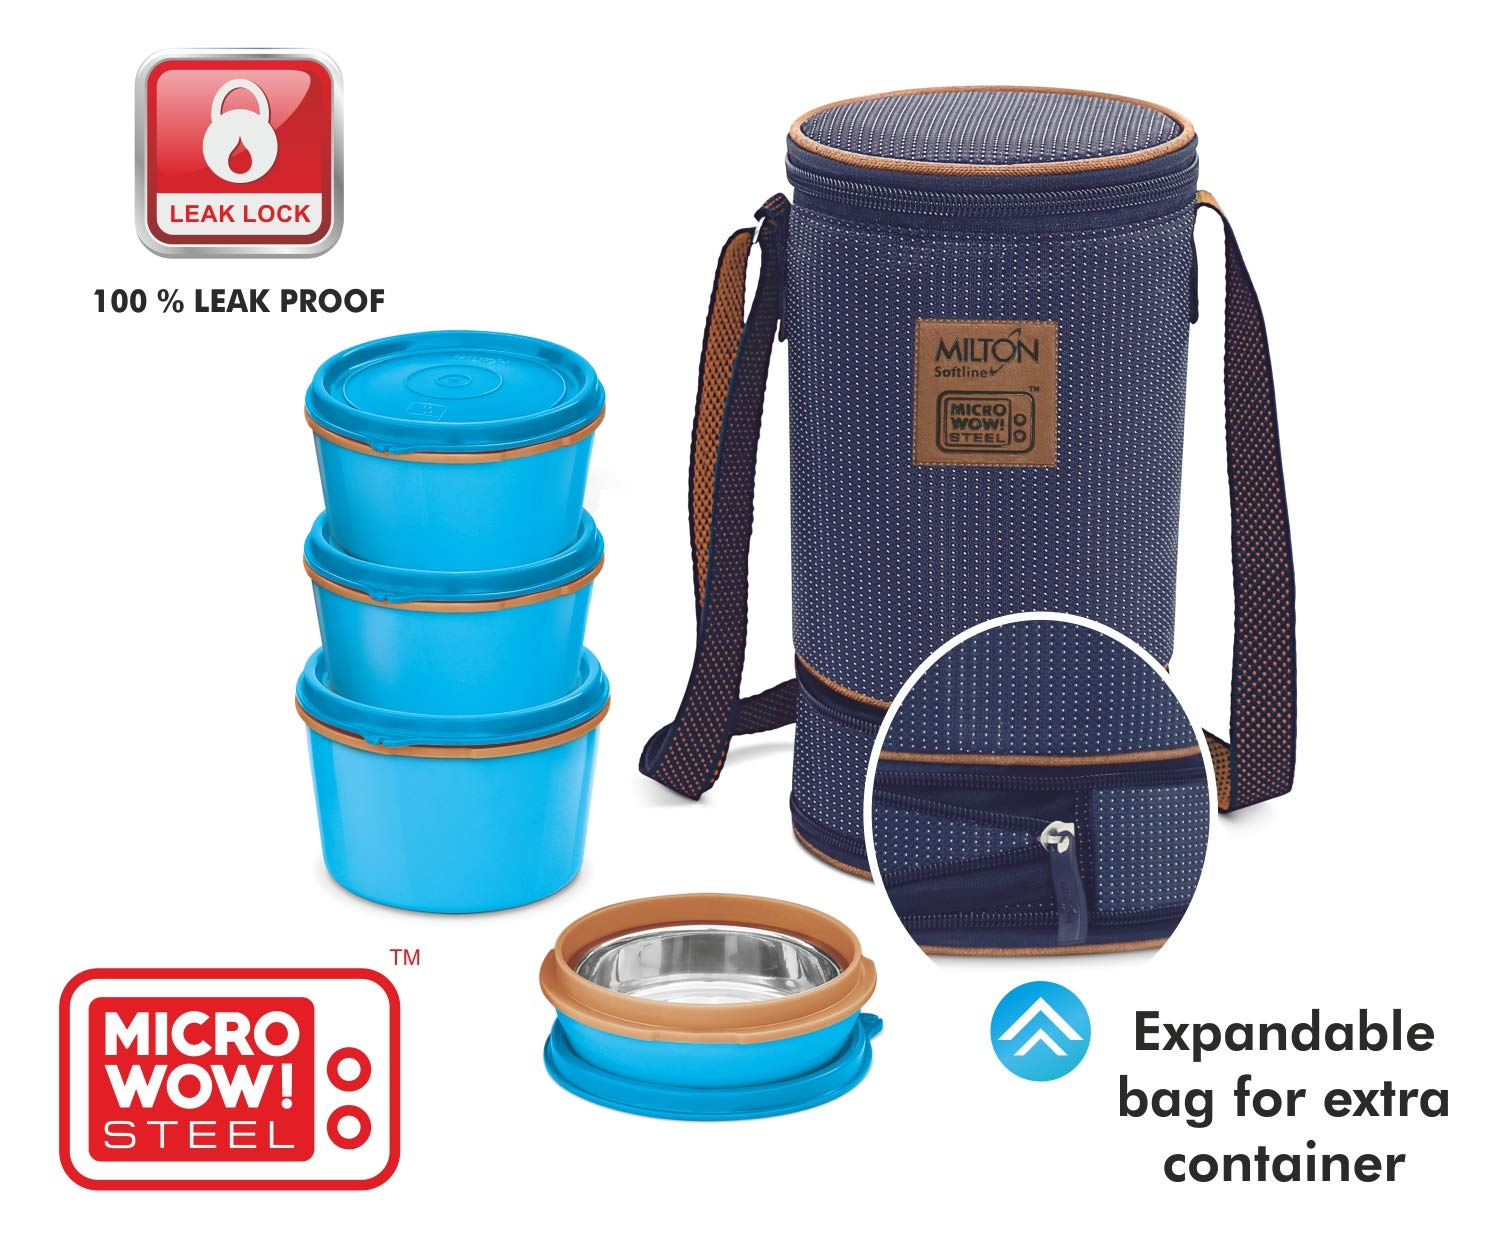 MILTON Bento Lunch Box Set -4 MICROWAVEABLE Stainless Steel Meal Prep Containers, Expandable Thermal Insulated Lunch Bag, SS Spoon Double Wall Food Storage Boxes w/Leak Proof Lids For Men,Women,Kids by Milton (Image #3)